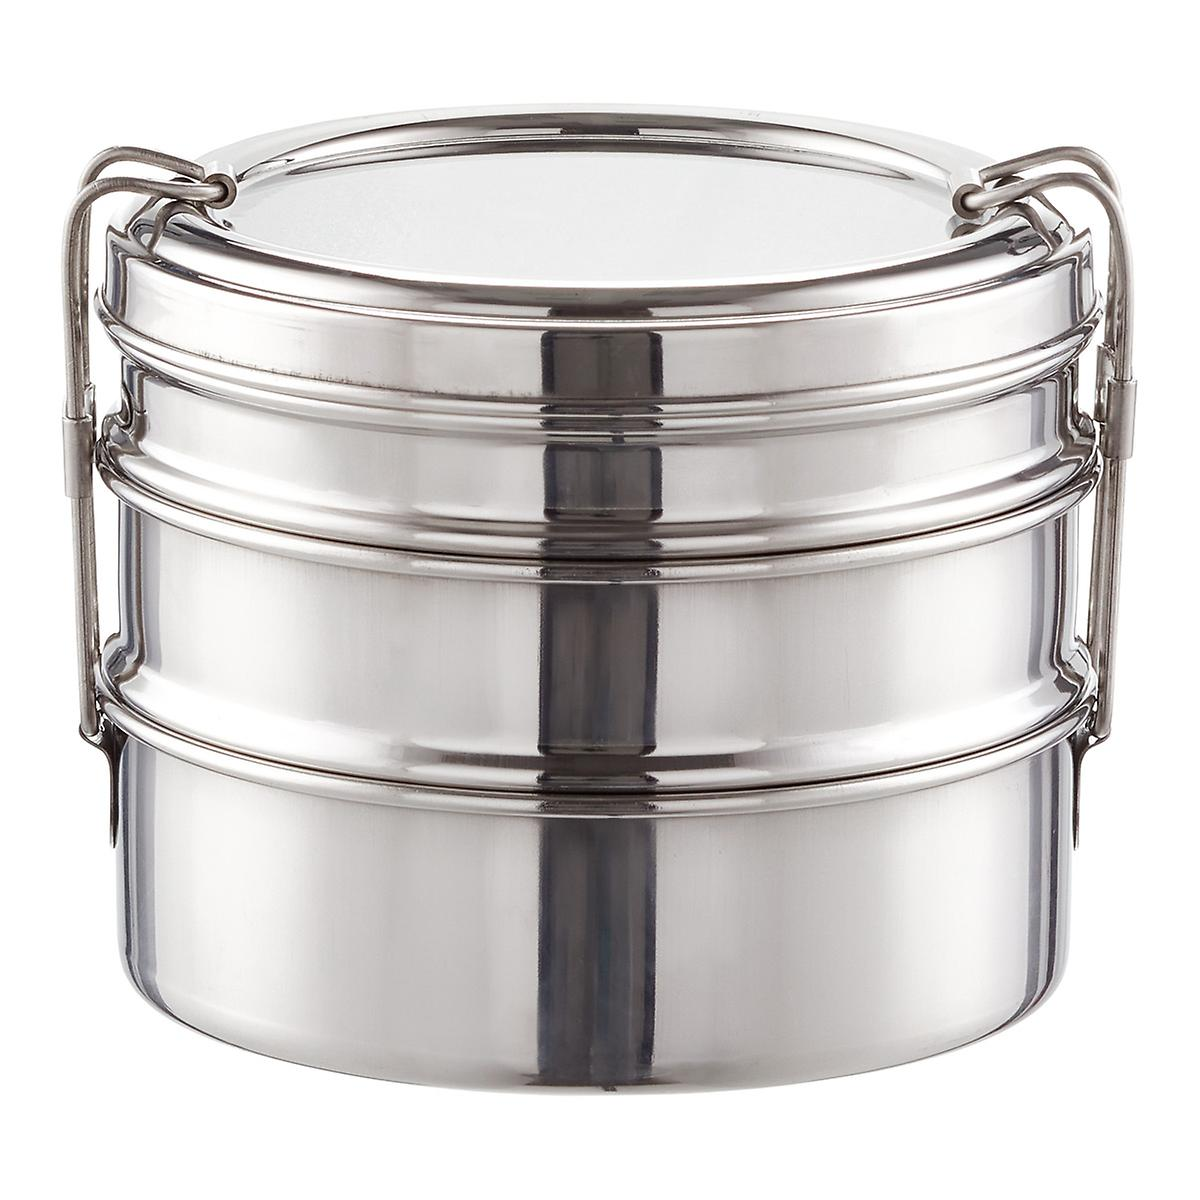 ECOlunchbox Stainless Steel Round 3-in-1 Bento Box | The Container Store